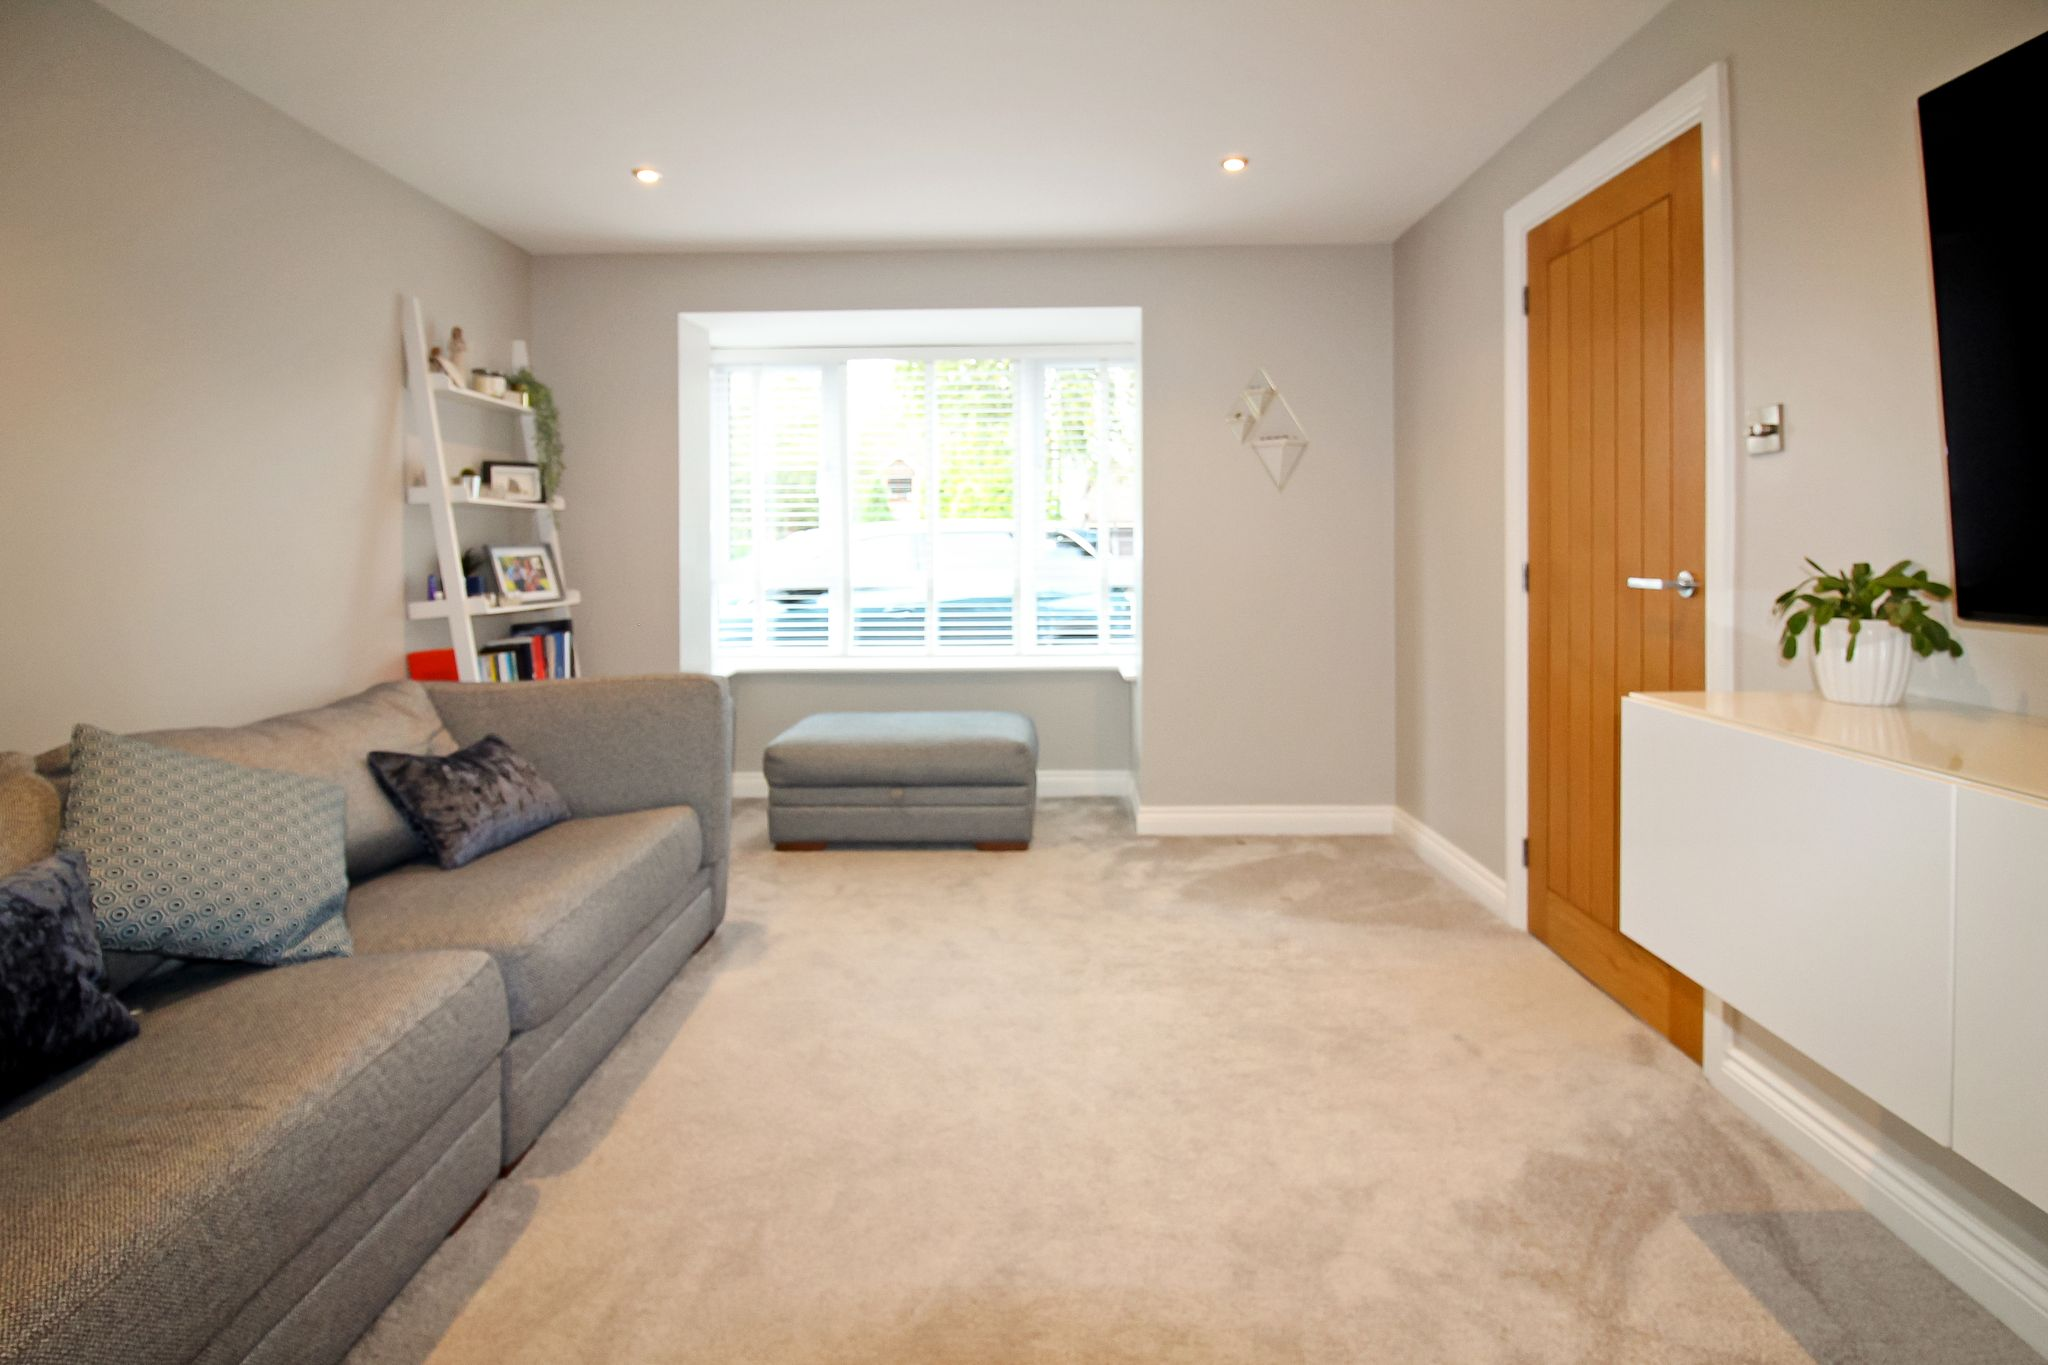 4 bedroom detached house For Sale in Solihull - Photograph 7.